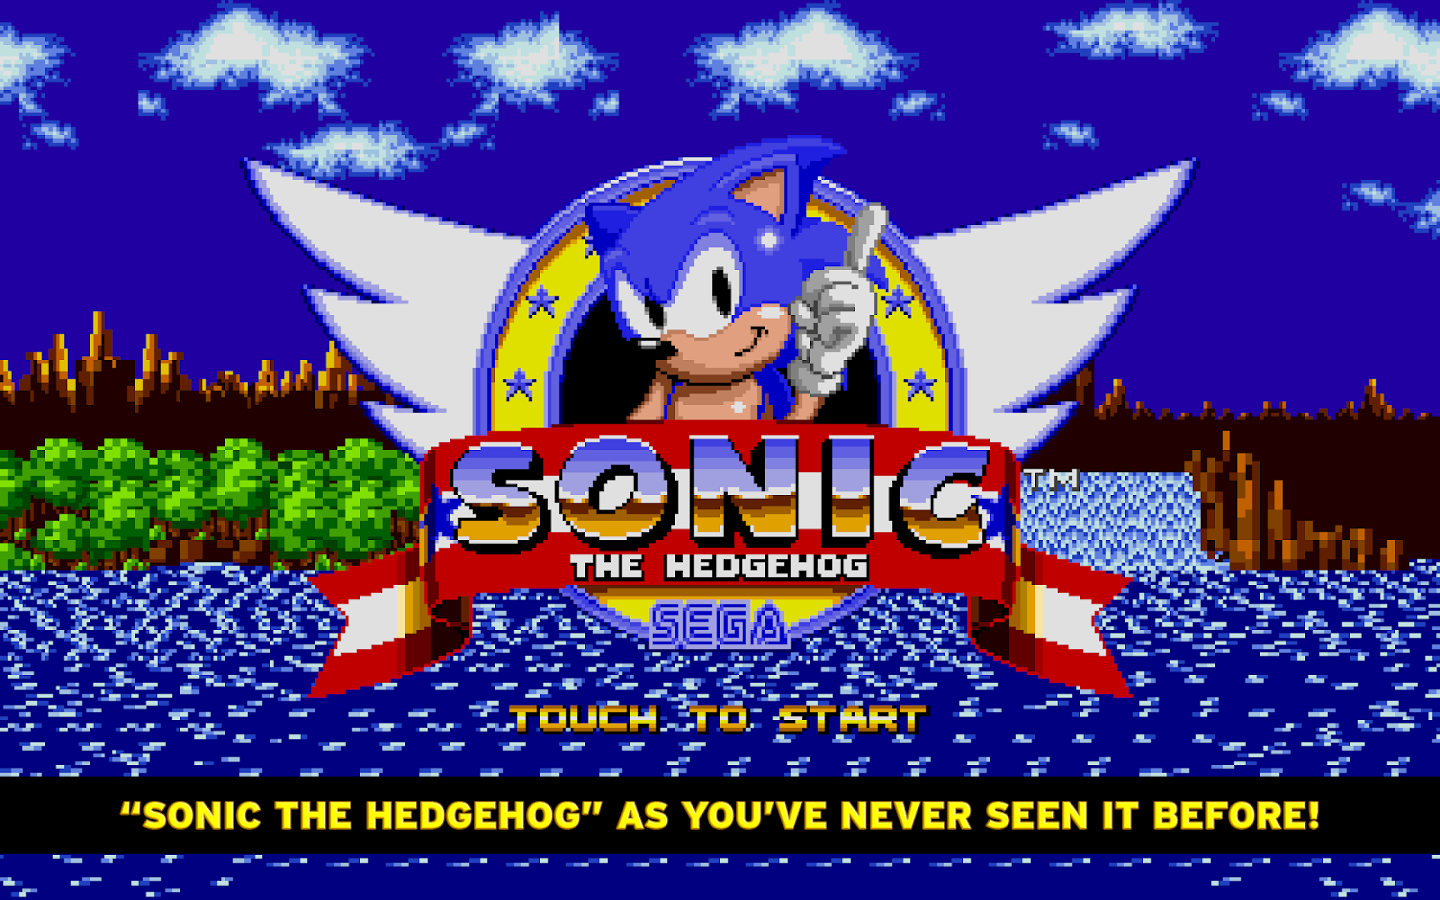 Sonic The Hedgehog v1.0.4 Mod Apk Zippy